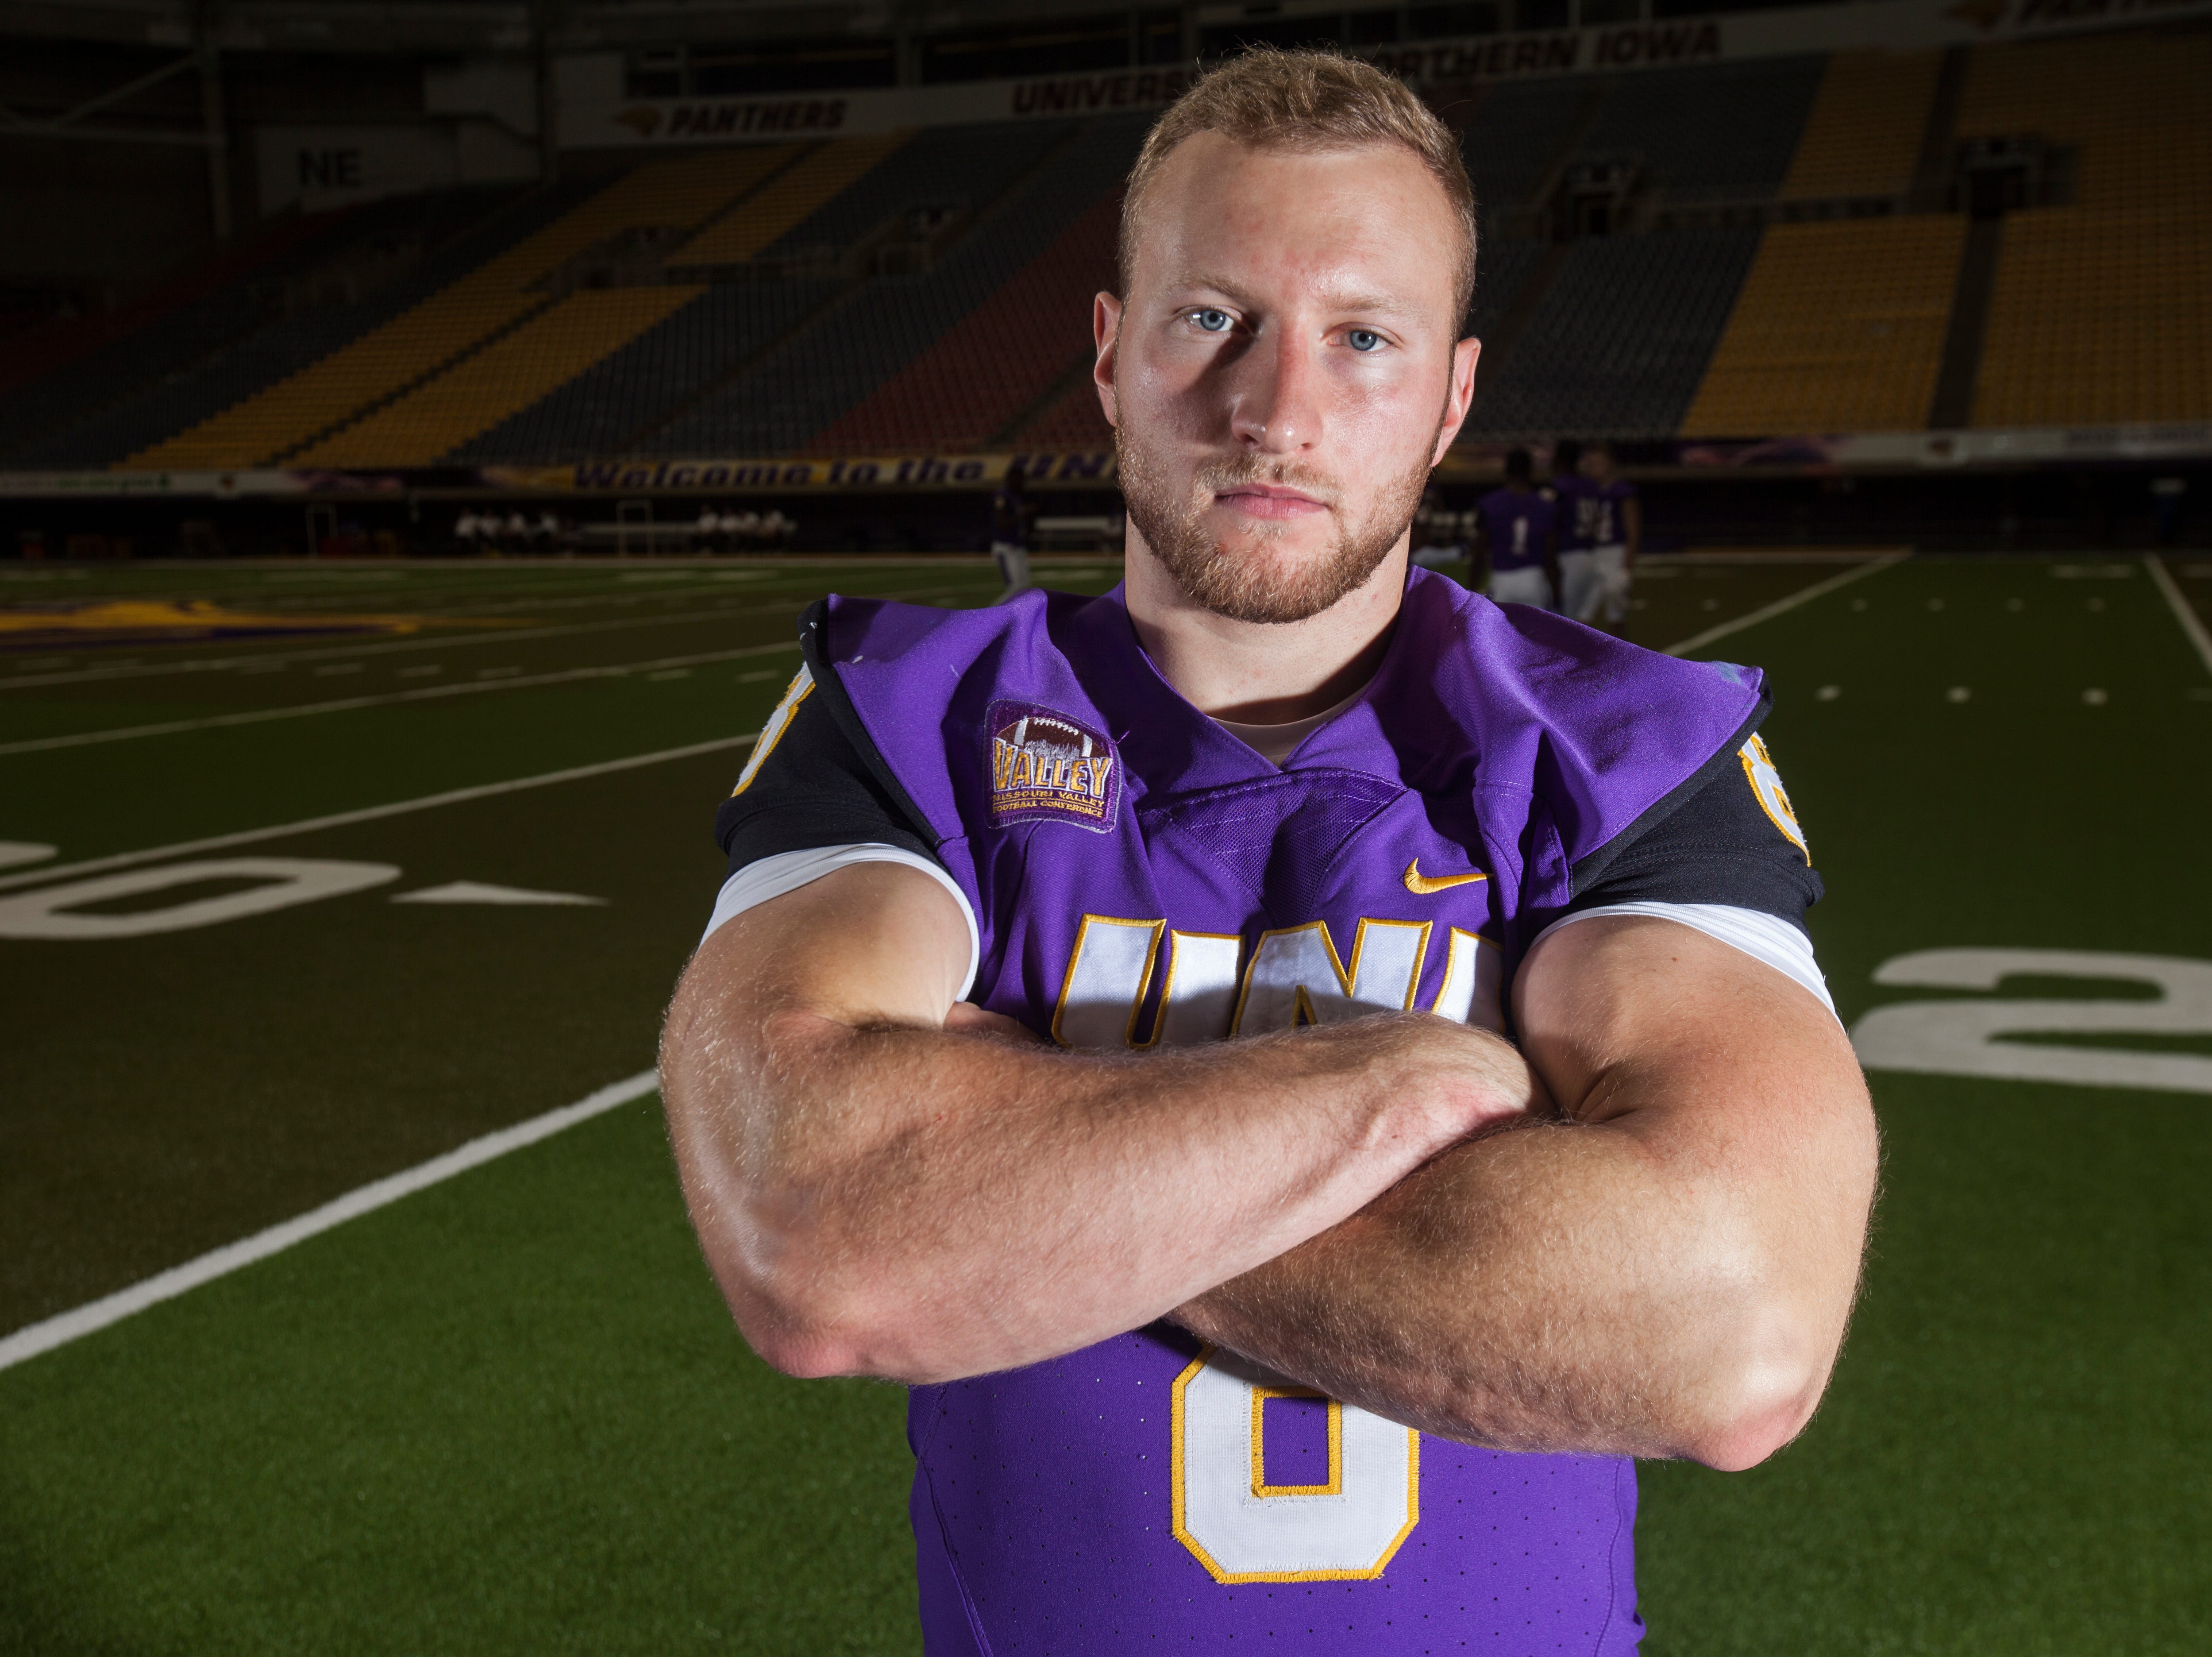 UNI running back Marcus Weymiller poses for a portrait during media day on Wednesday, Aug. 8, 2018, at the UNI-Dome in Cedar Falls, Iowa.